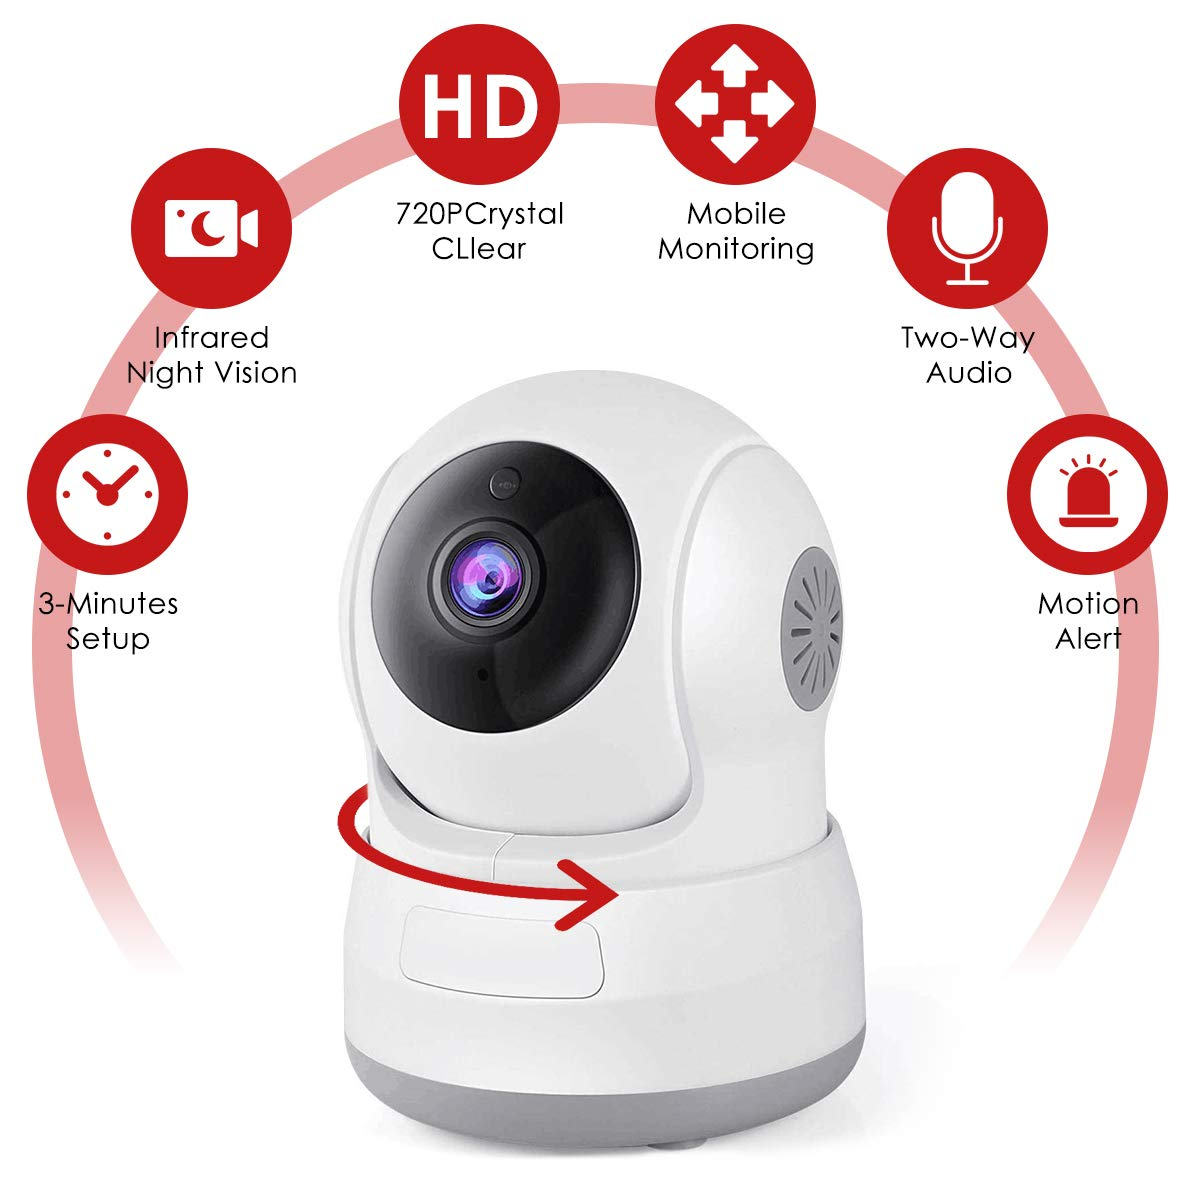 Wireless Security Camera, 720P HD Home WiFi Wireless Security Surveillance IP Camera with Motion Detection Pan/Tilt, 2 Way Audio and Night Vision Baby Monitor, Nanny Cam(White)